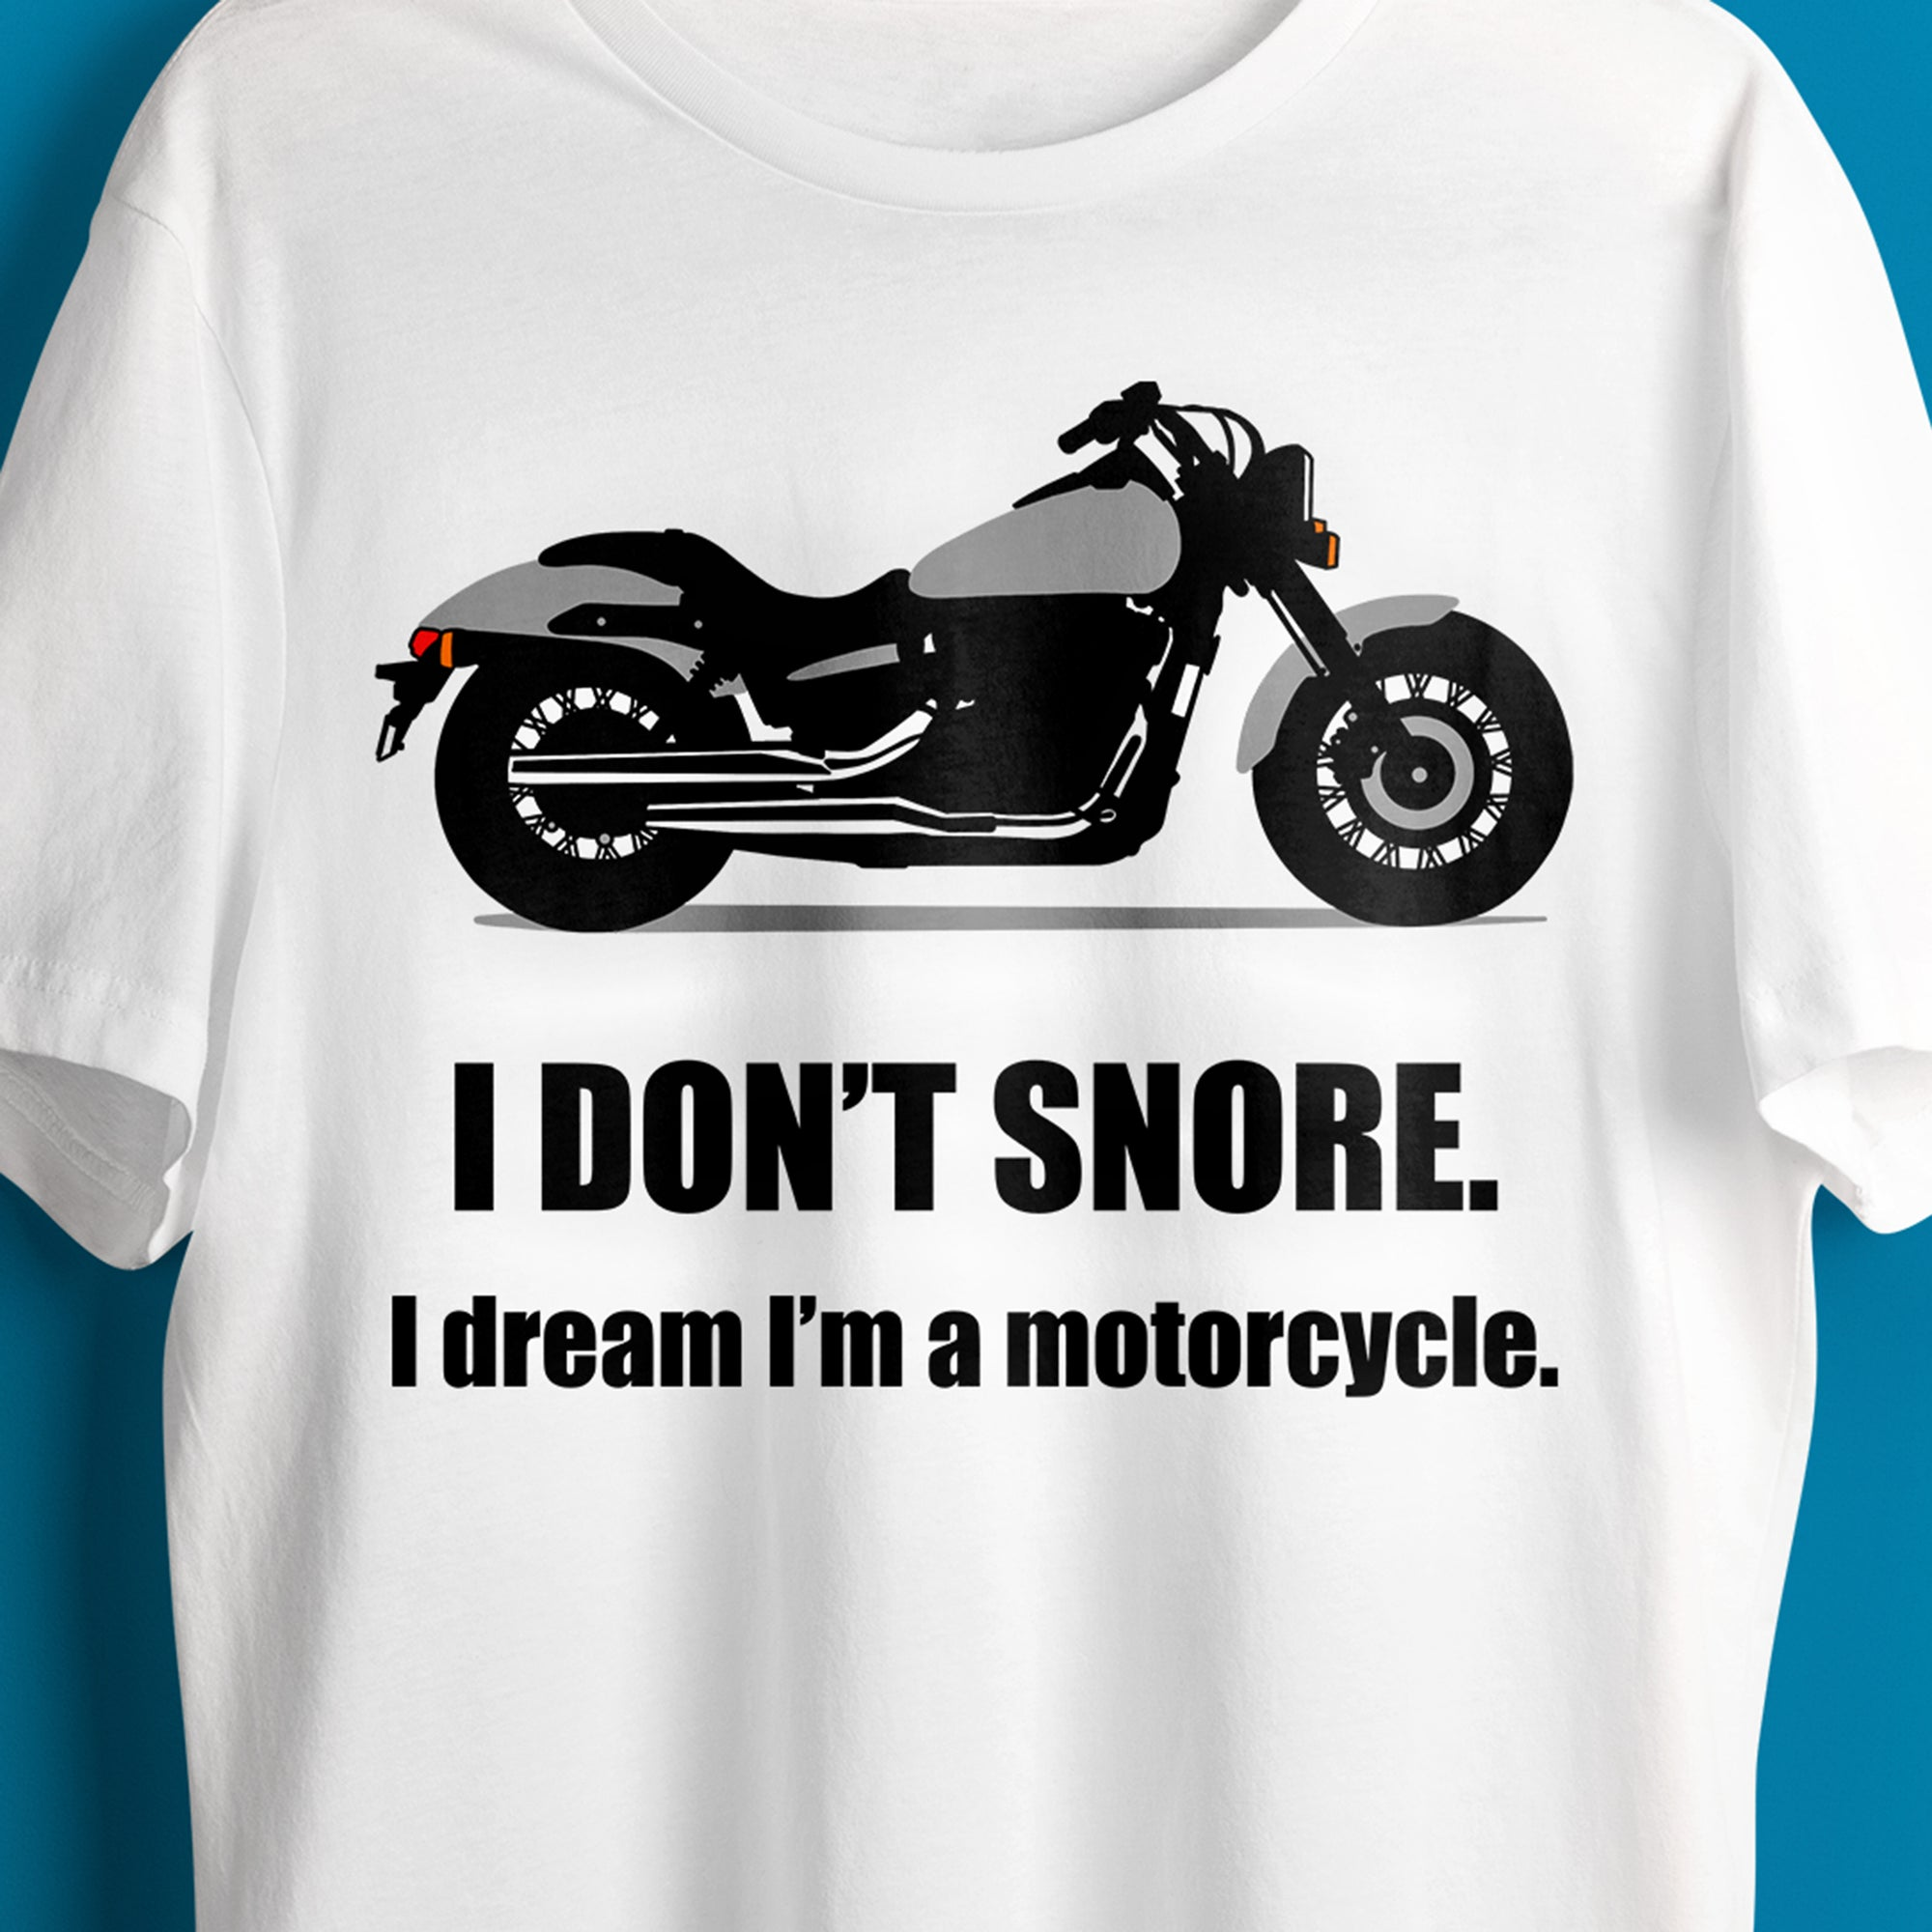 Funny Father's Day SVG File, Dad SVG File, Dad Shirt Saying SVG, Don't Snore Dream I'm a Motorcycle SVG File, SVG File for Man, Snoring SVG, Motorcycle SVG